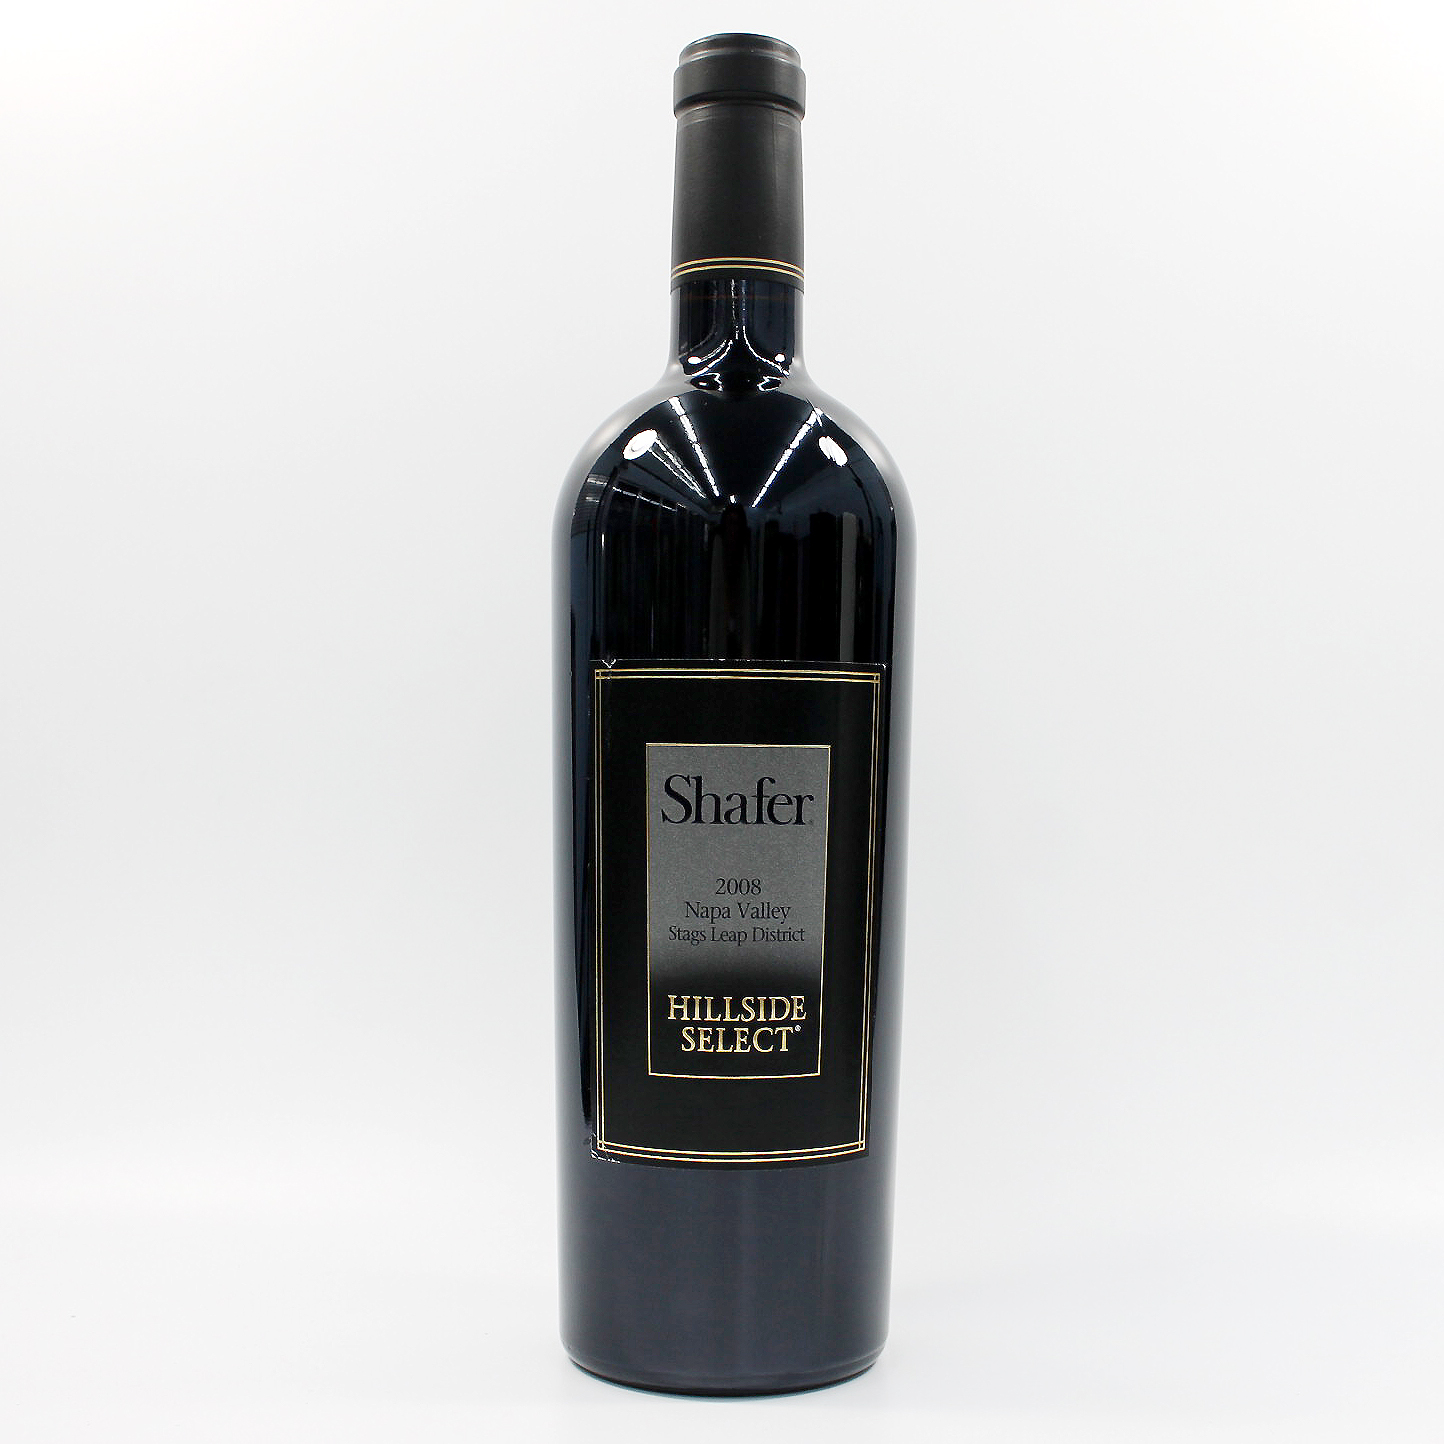 Sell your wine: 2008 Shafer Hillside Select Cab